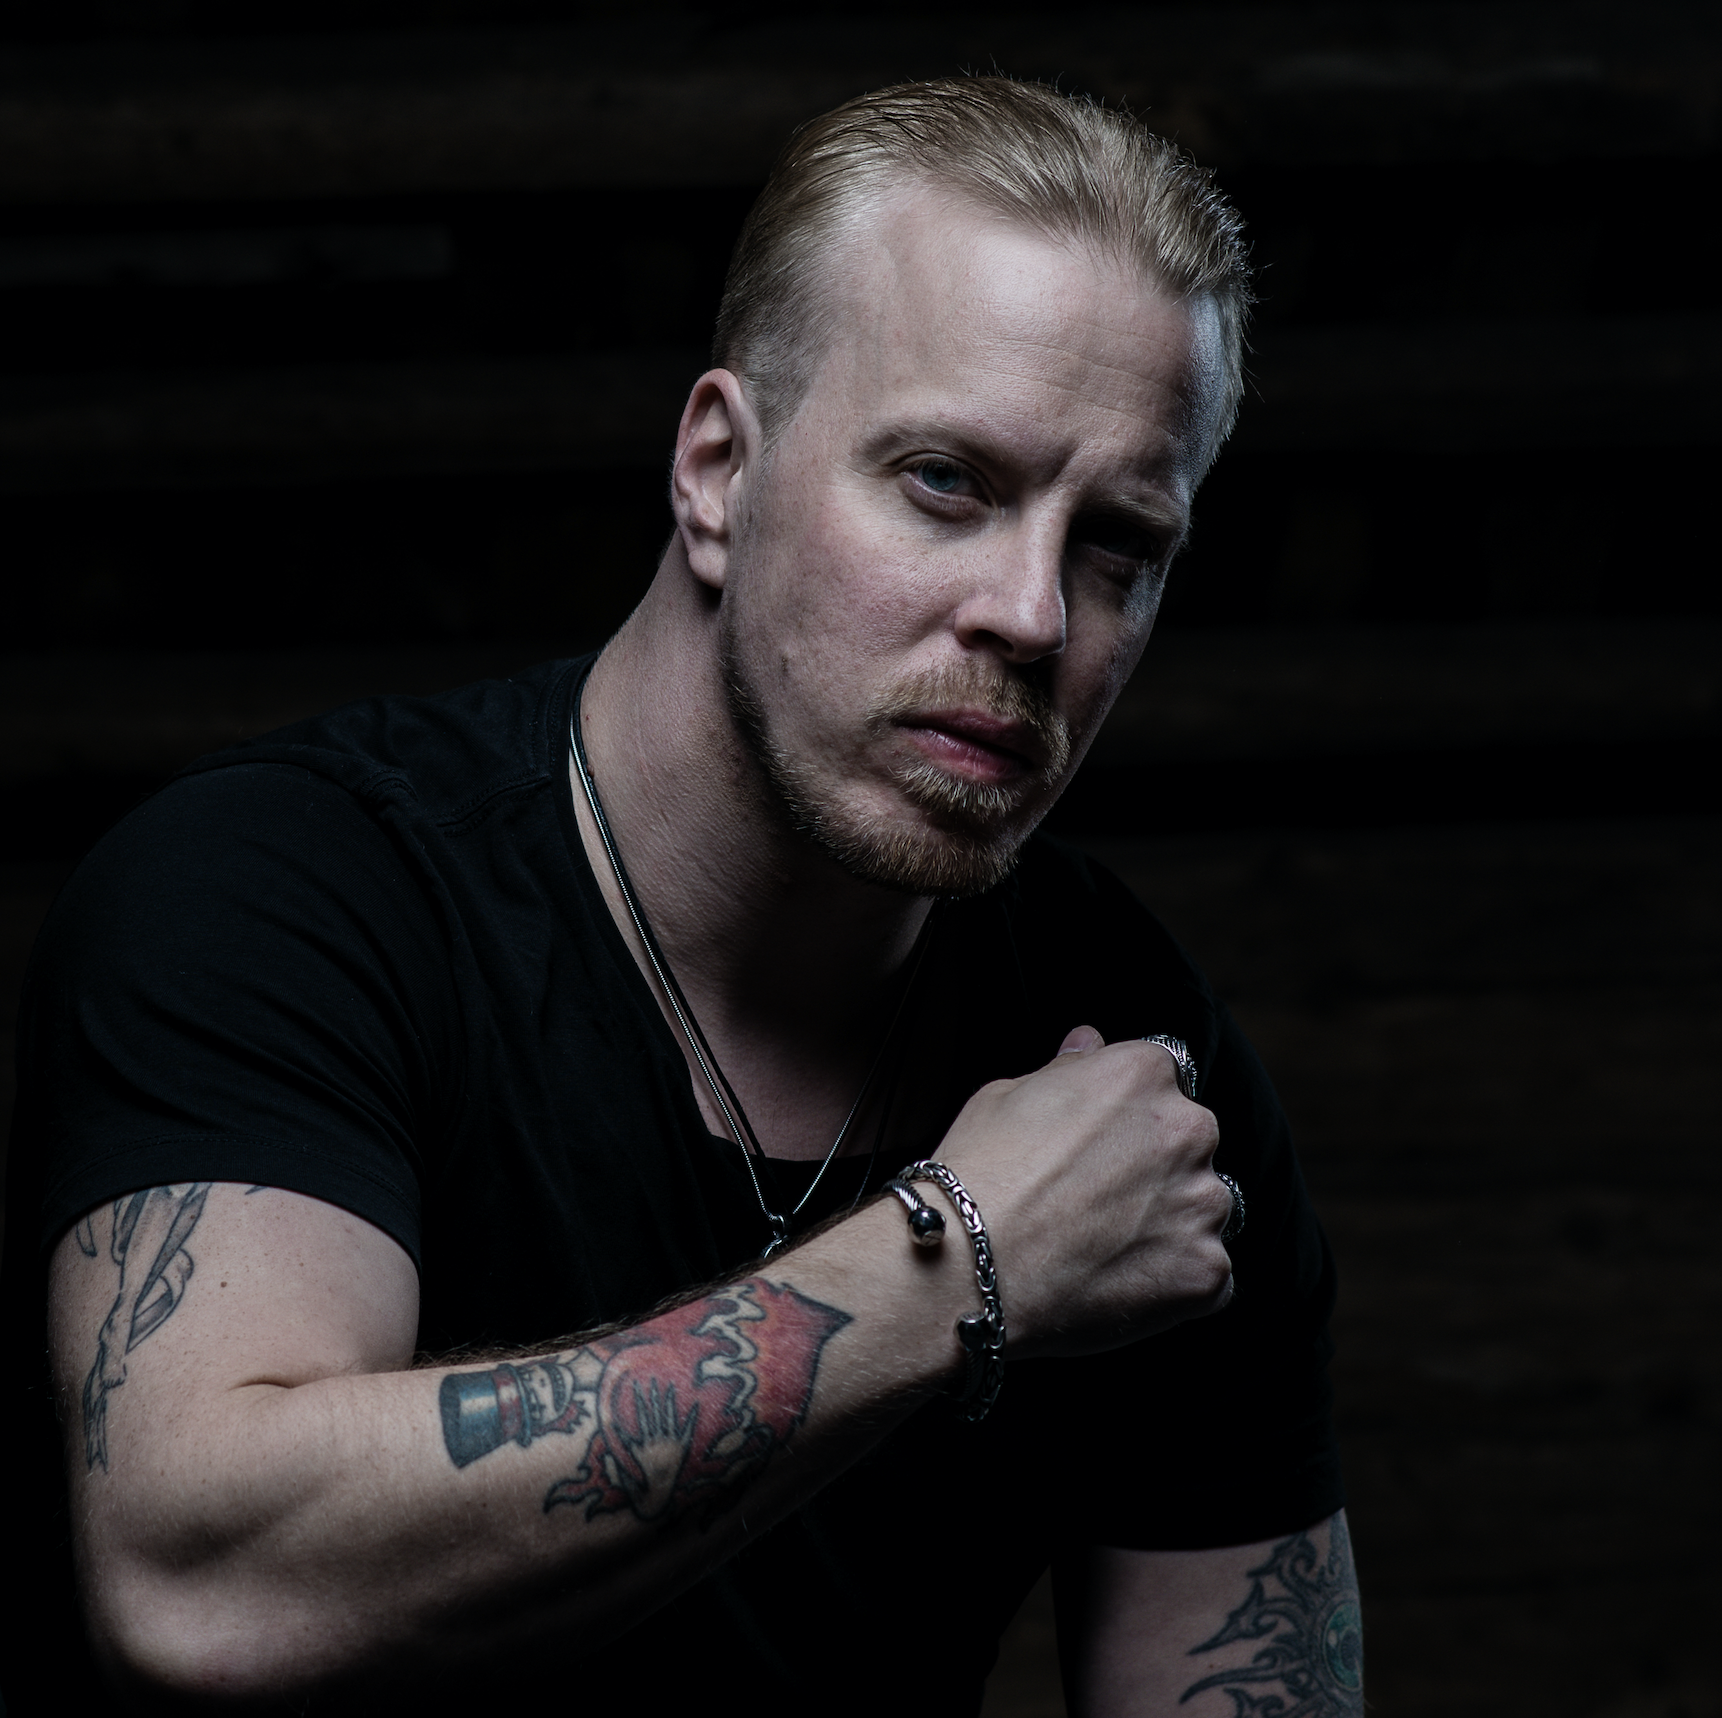 Johan Ruborg drops a new project titled 'Villain of the Piece'